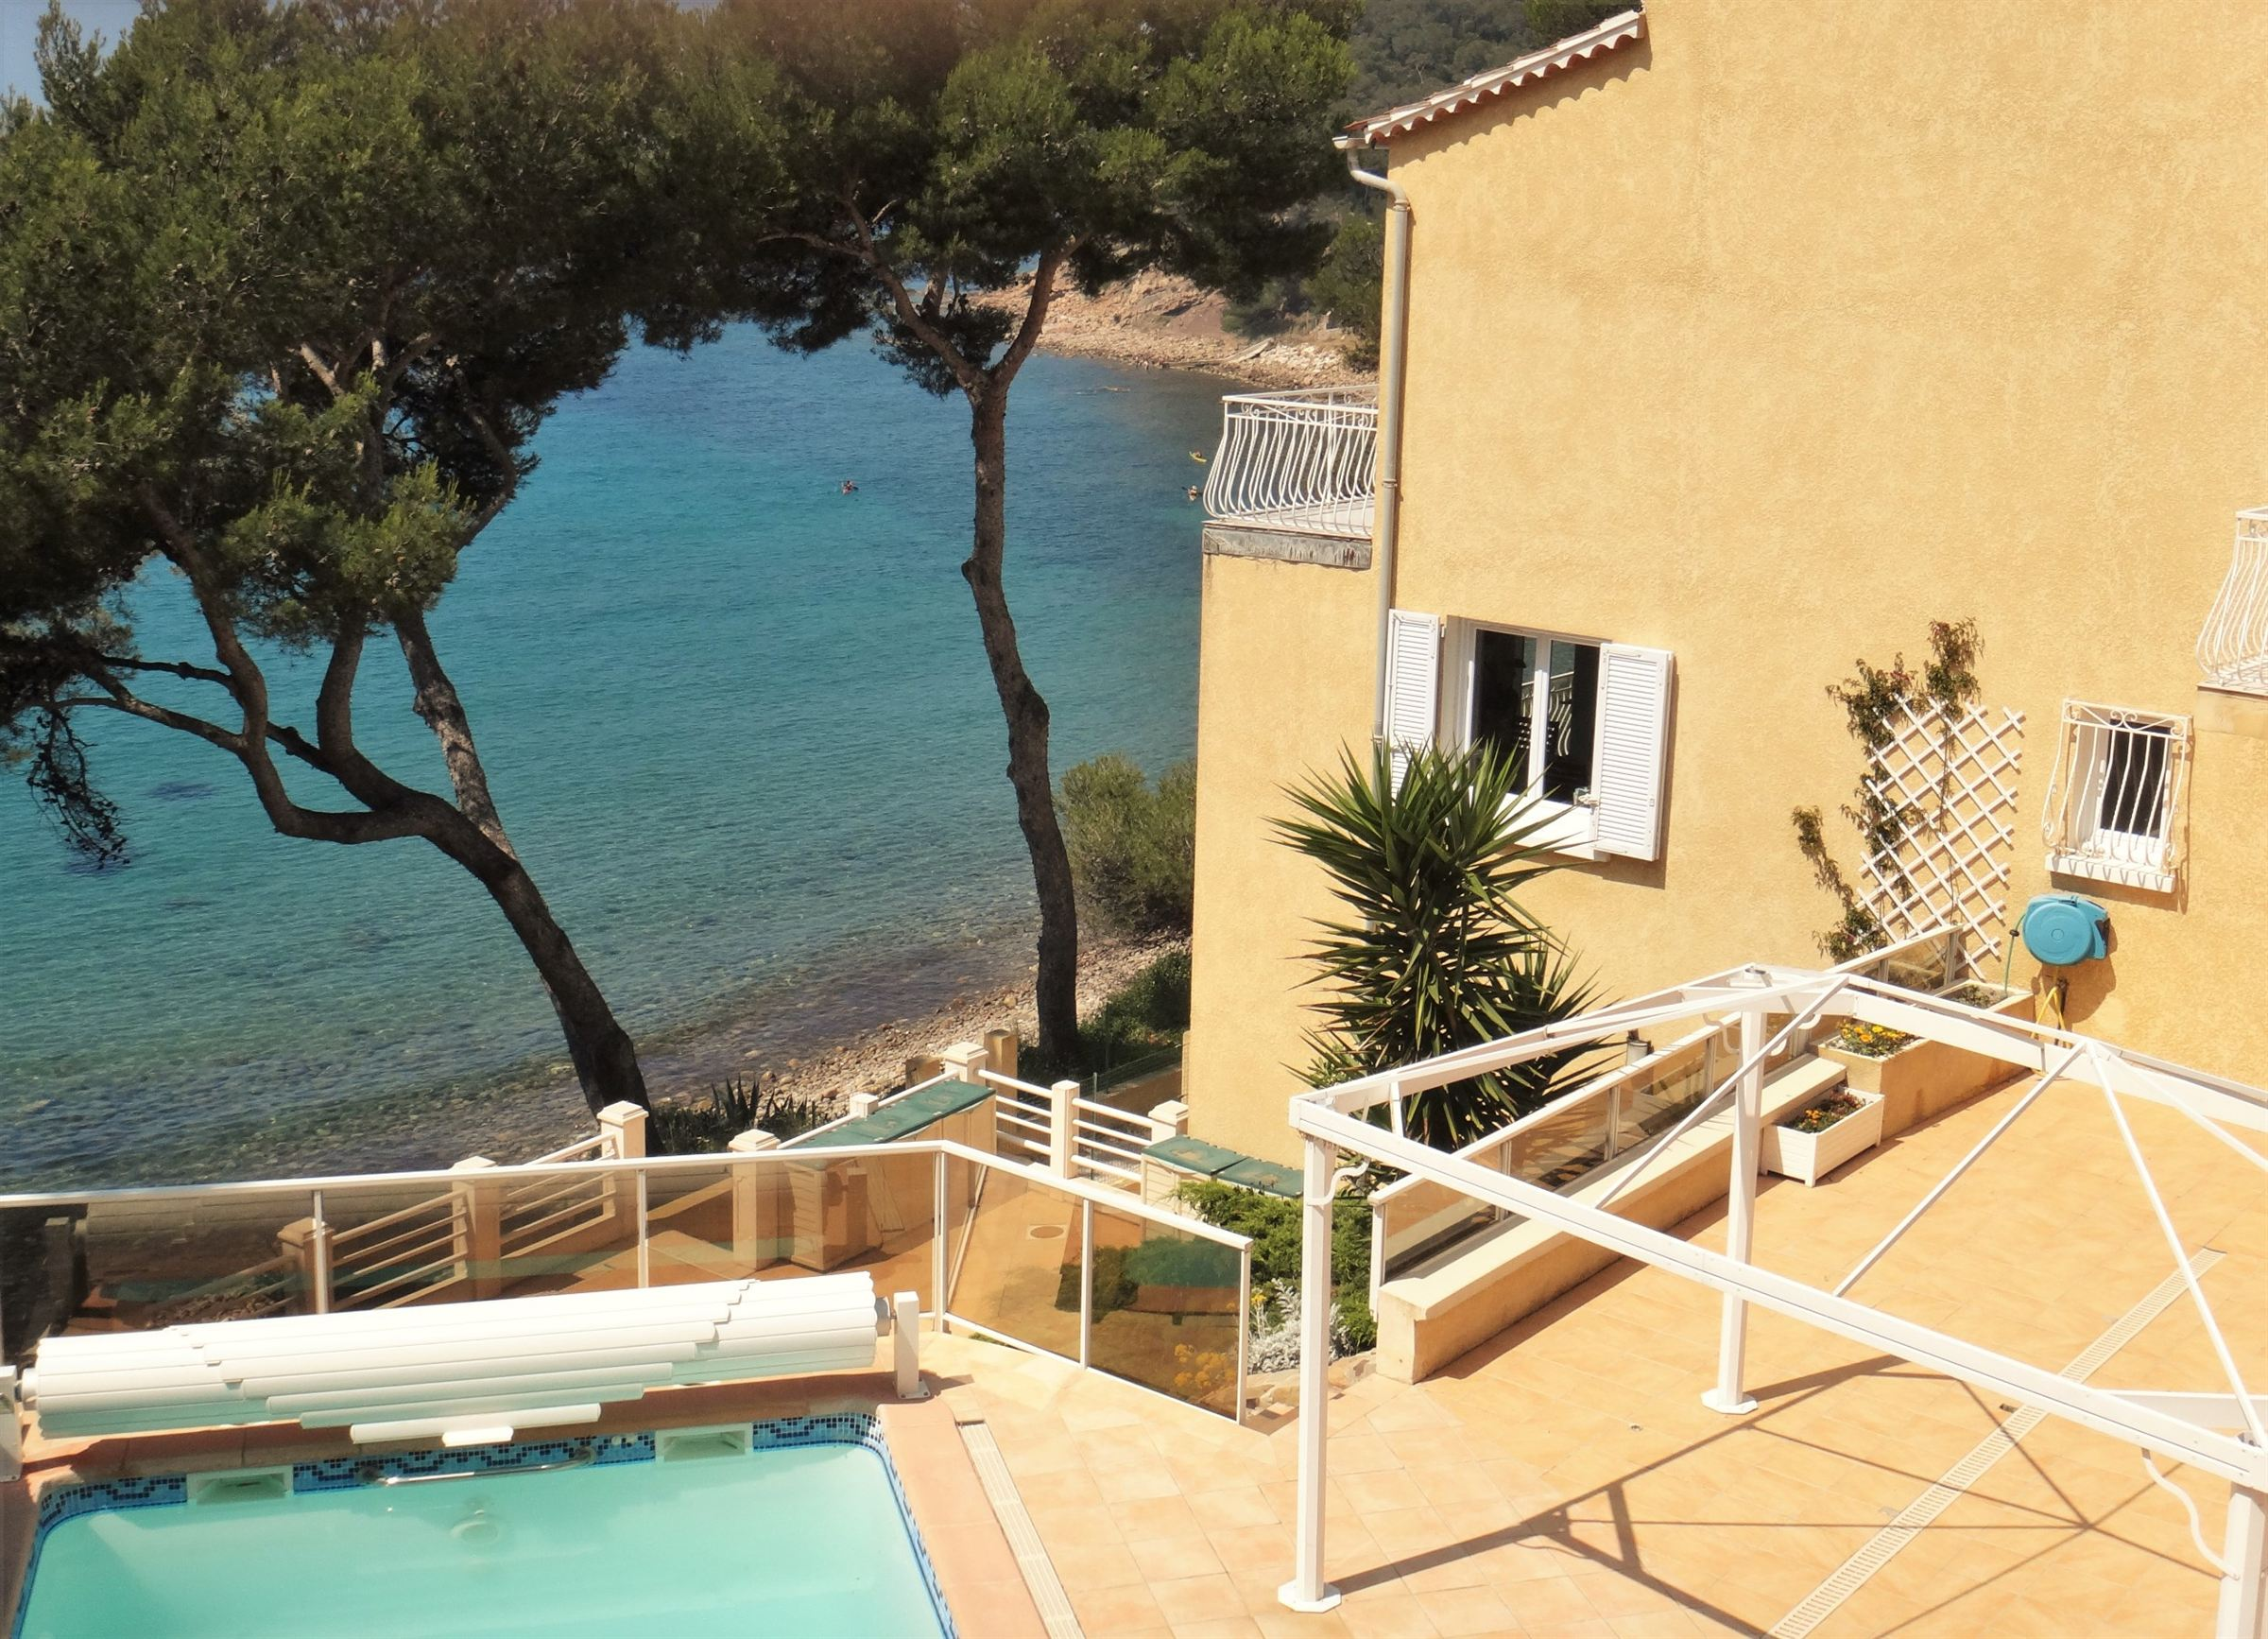 Single Family Home for Sale at Waterfront with Private sea access Other Provence-Alpes-Cote D'Azur, Provence-Alpes-Cote D'Azur, 83430 France